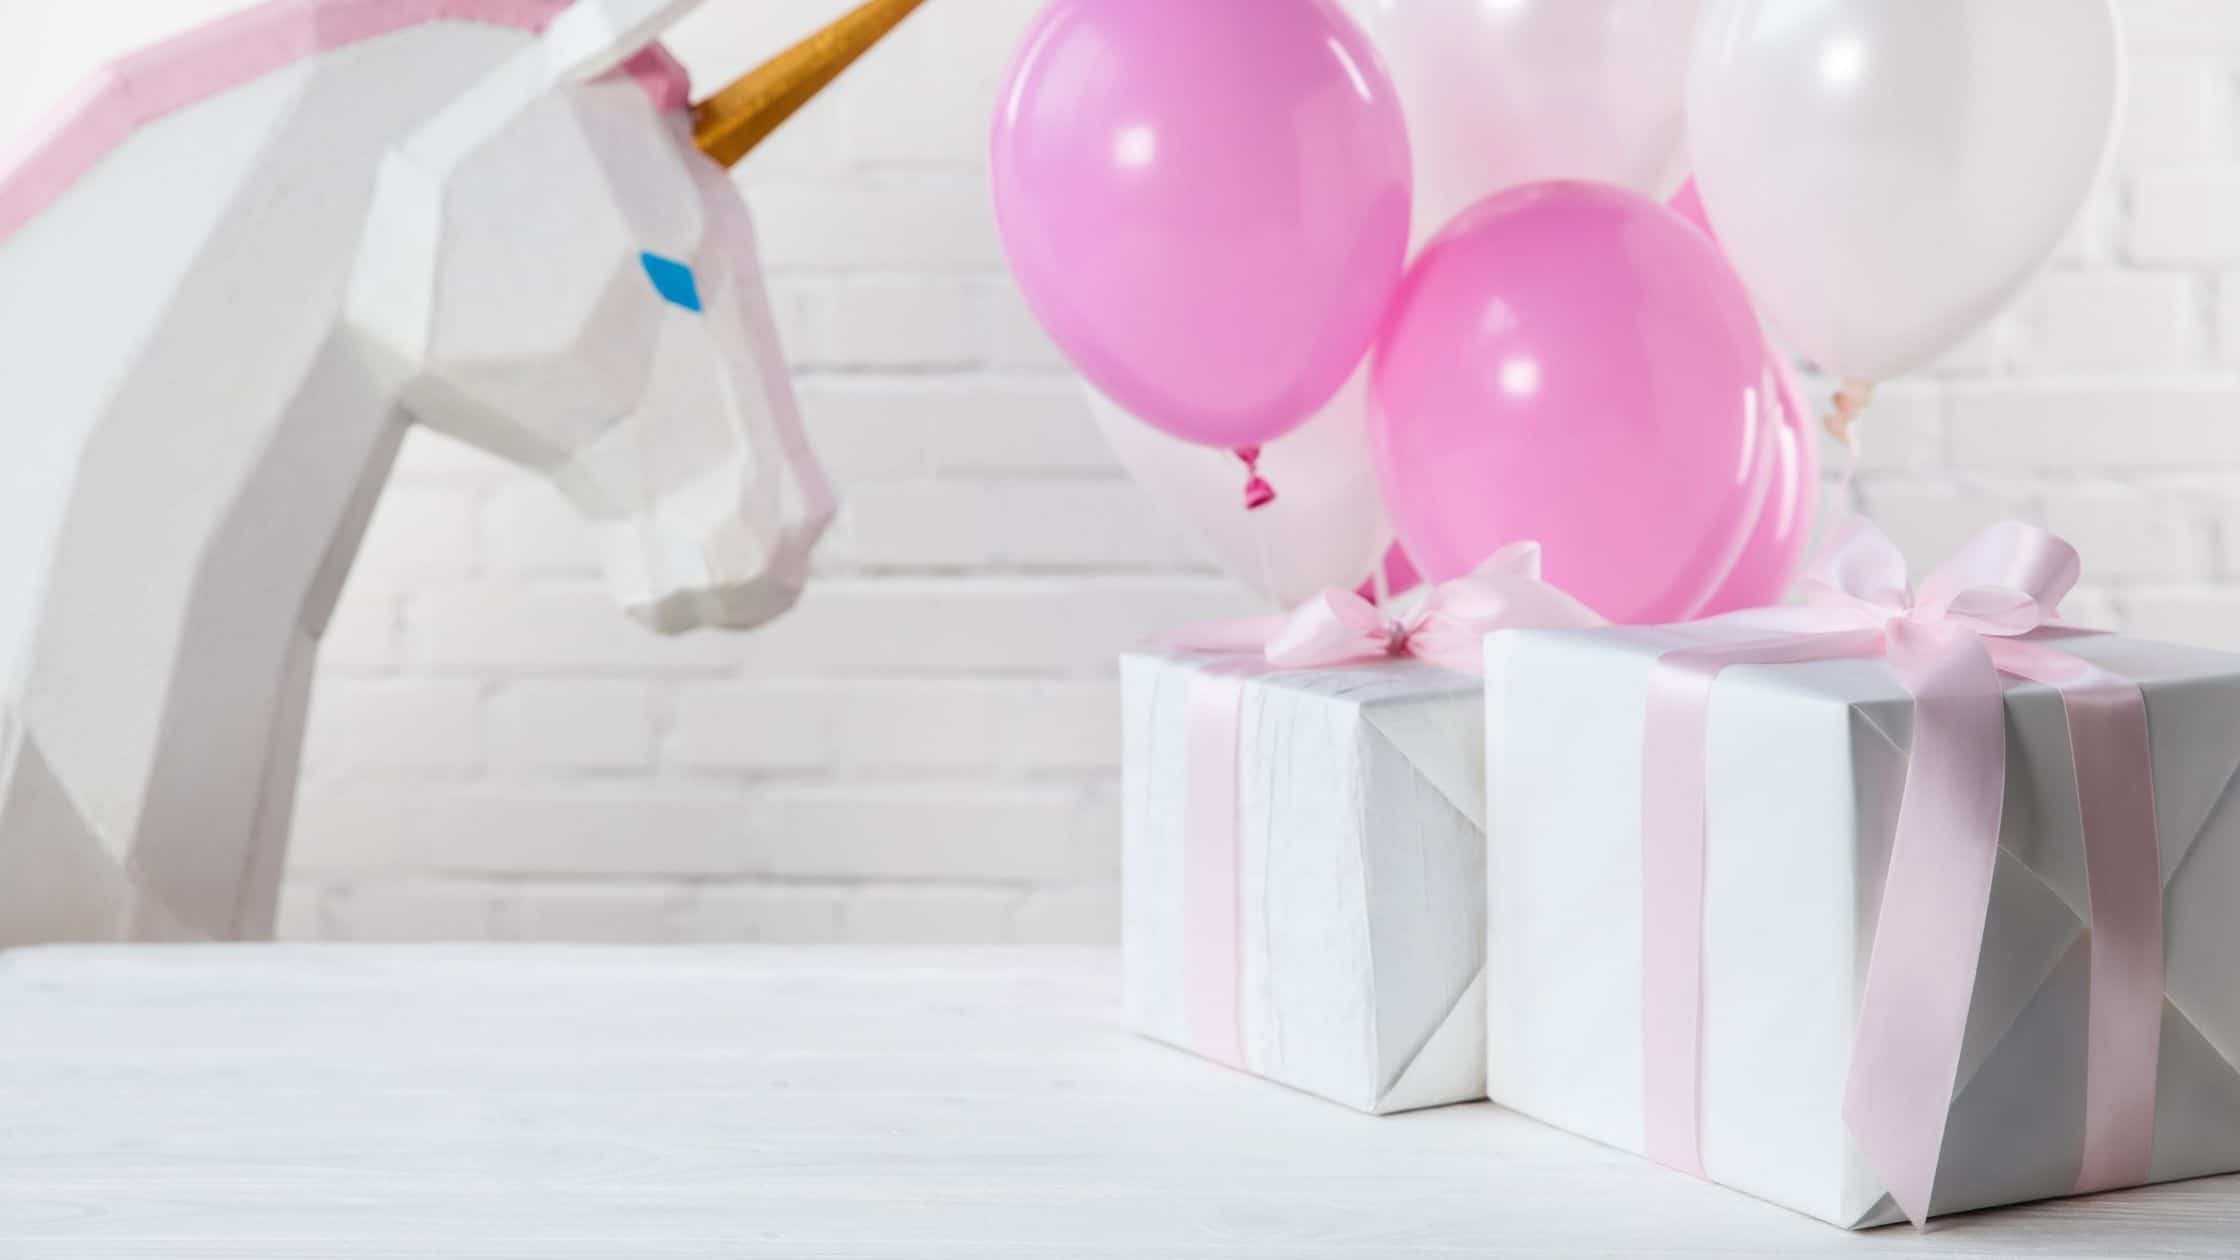 gifts wrapped with pink ribbon at a party with balloons and a unicorn